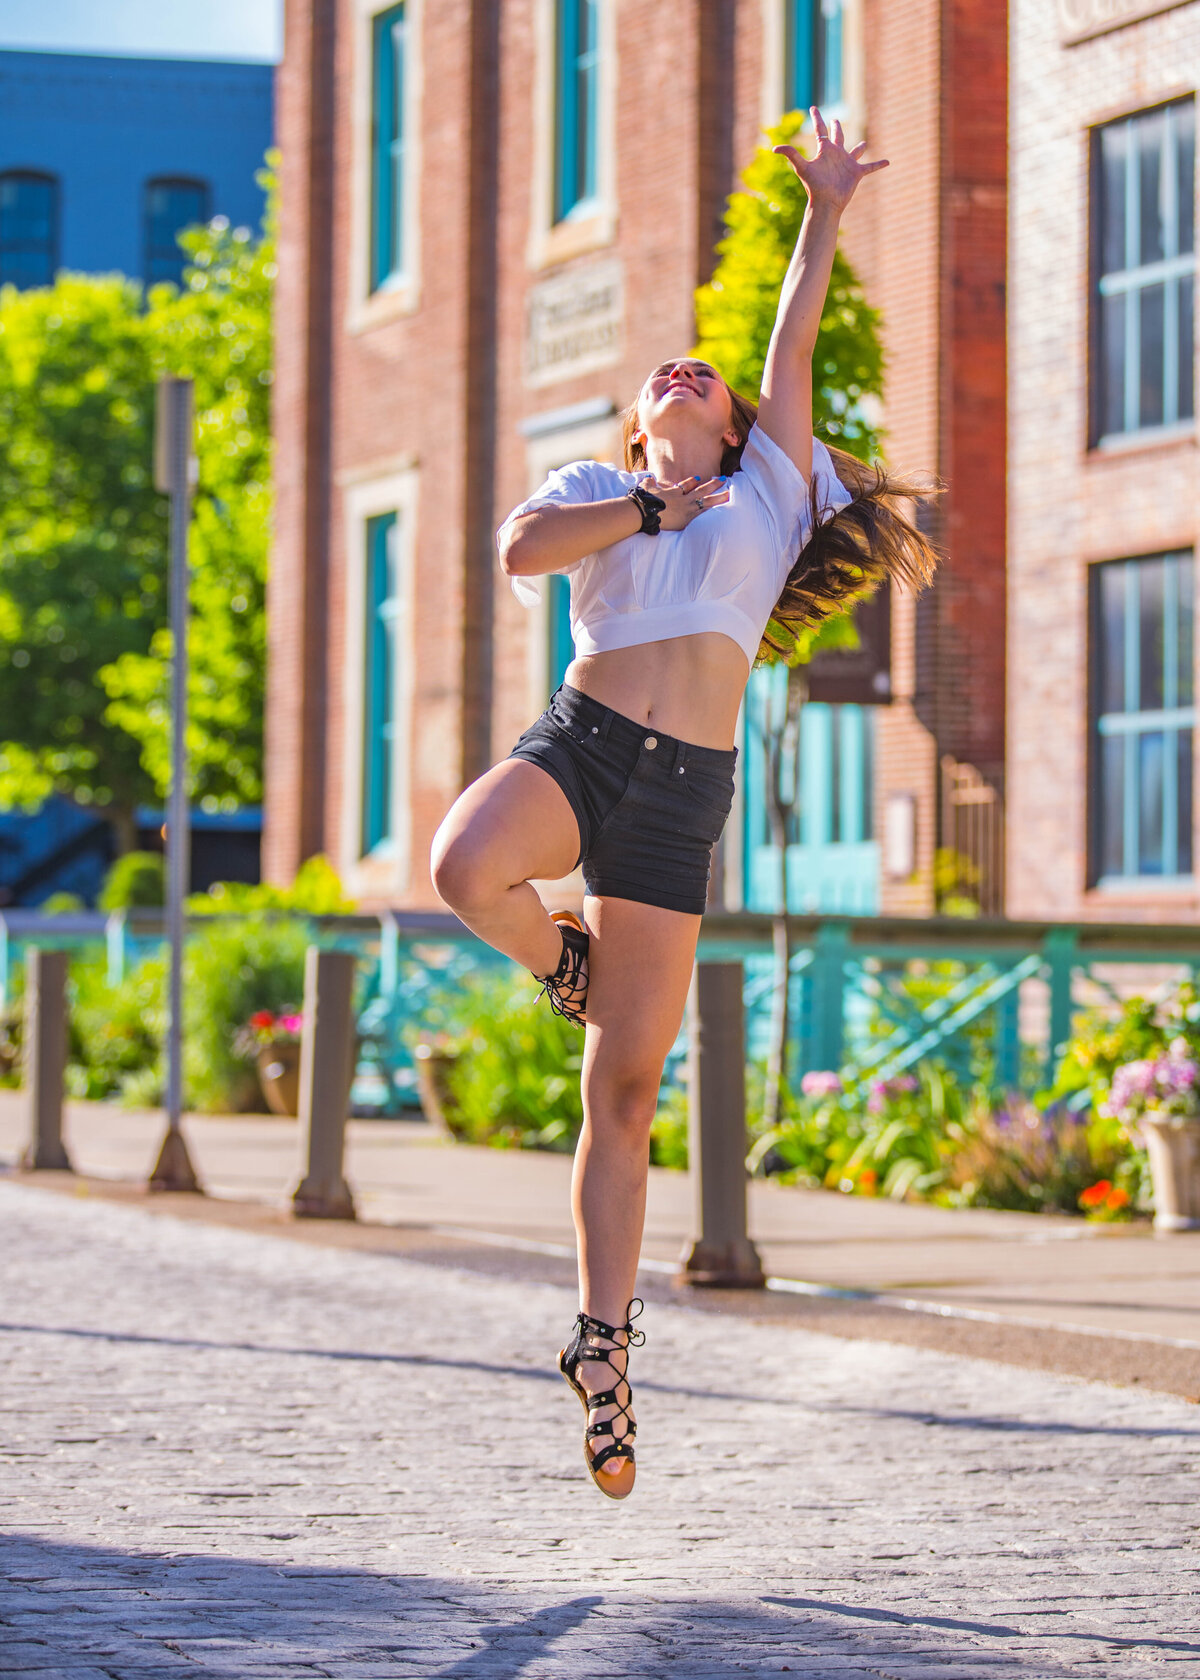 Rochester-New-York-Dance-pictures-Carrie-Eigbrett-Photography-3012